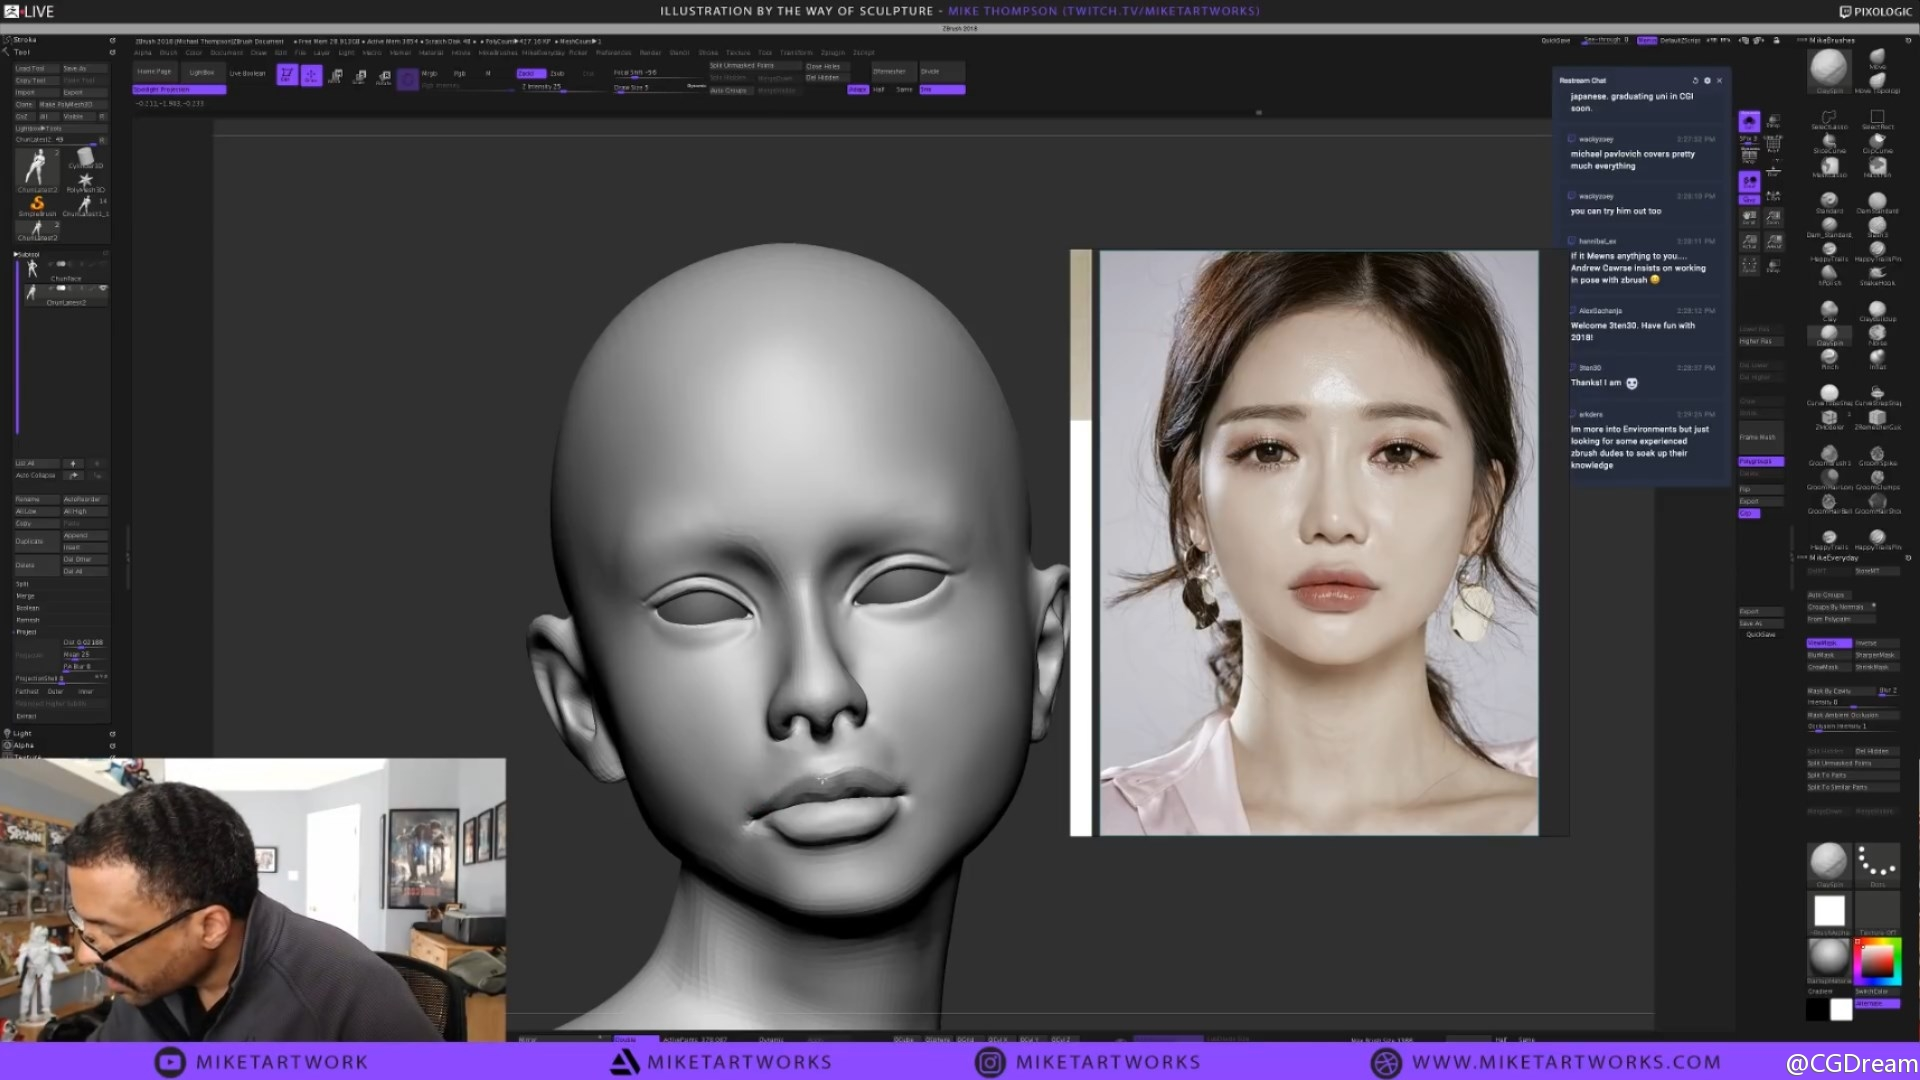 ZBrush雕刻《街头霸王》春丽3D模型视频教程 - Illustration by the Way of Sculpture